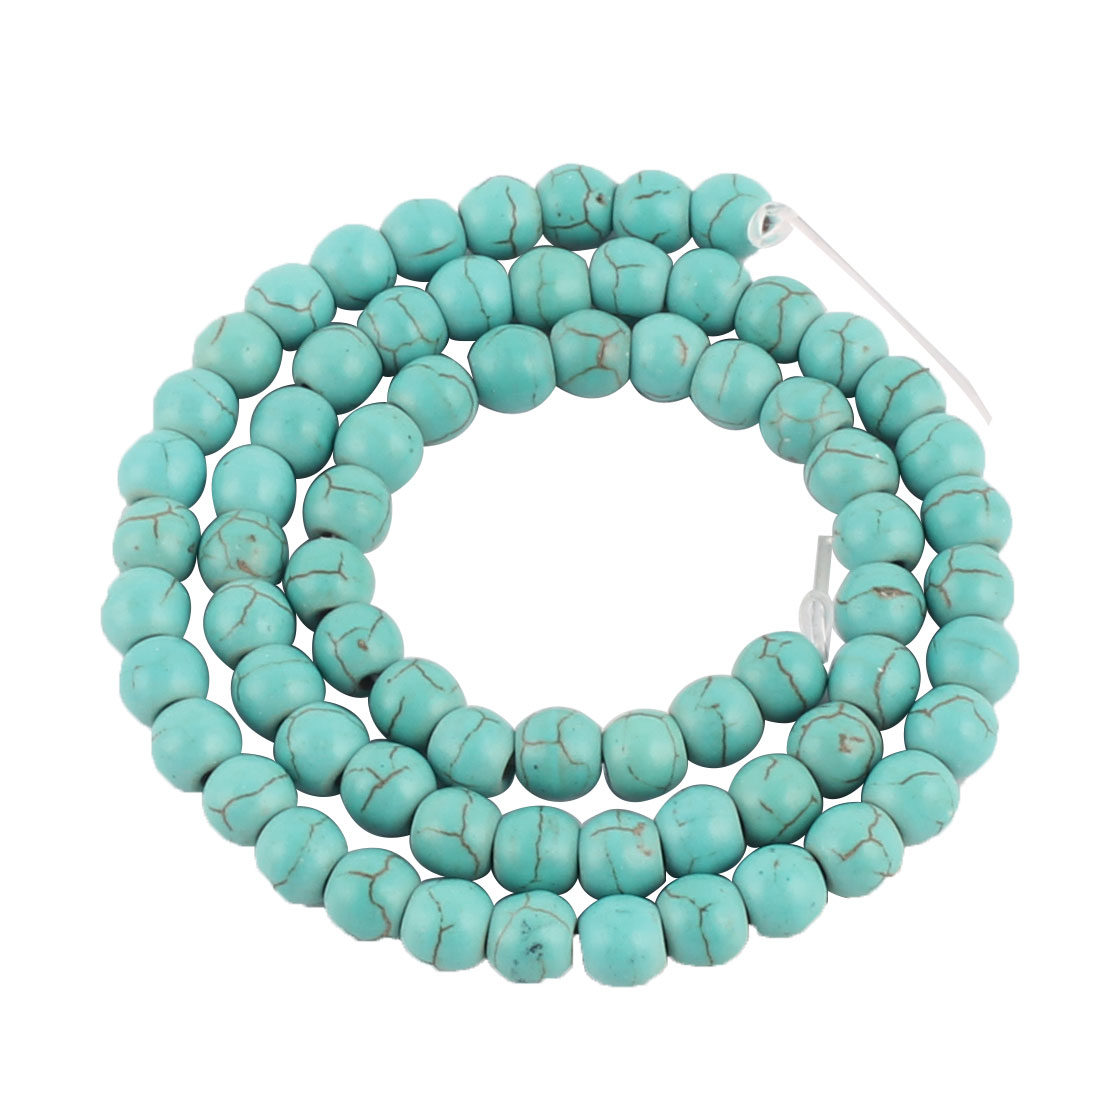 Lady Plastic Handcrafted Beads Linked Stretchy Necklace Jewelry Cyan 6mm Dia